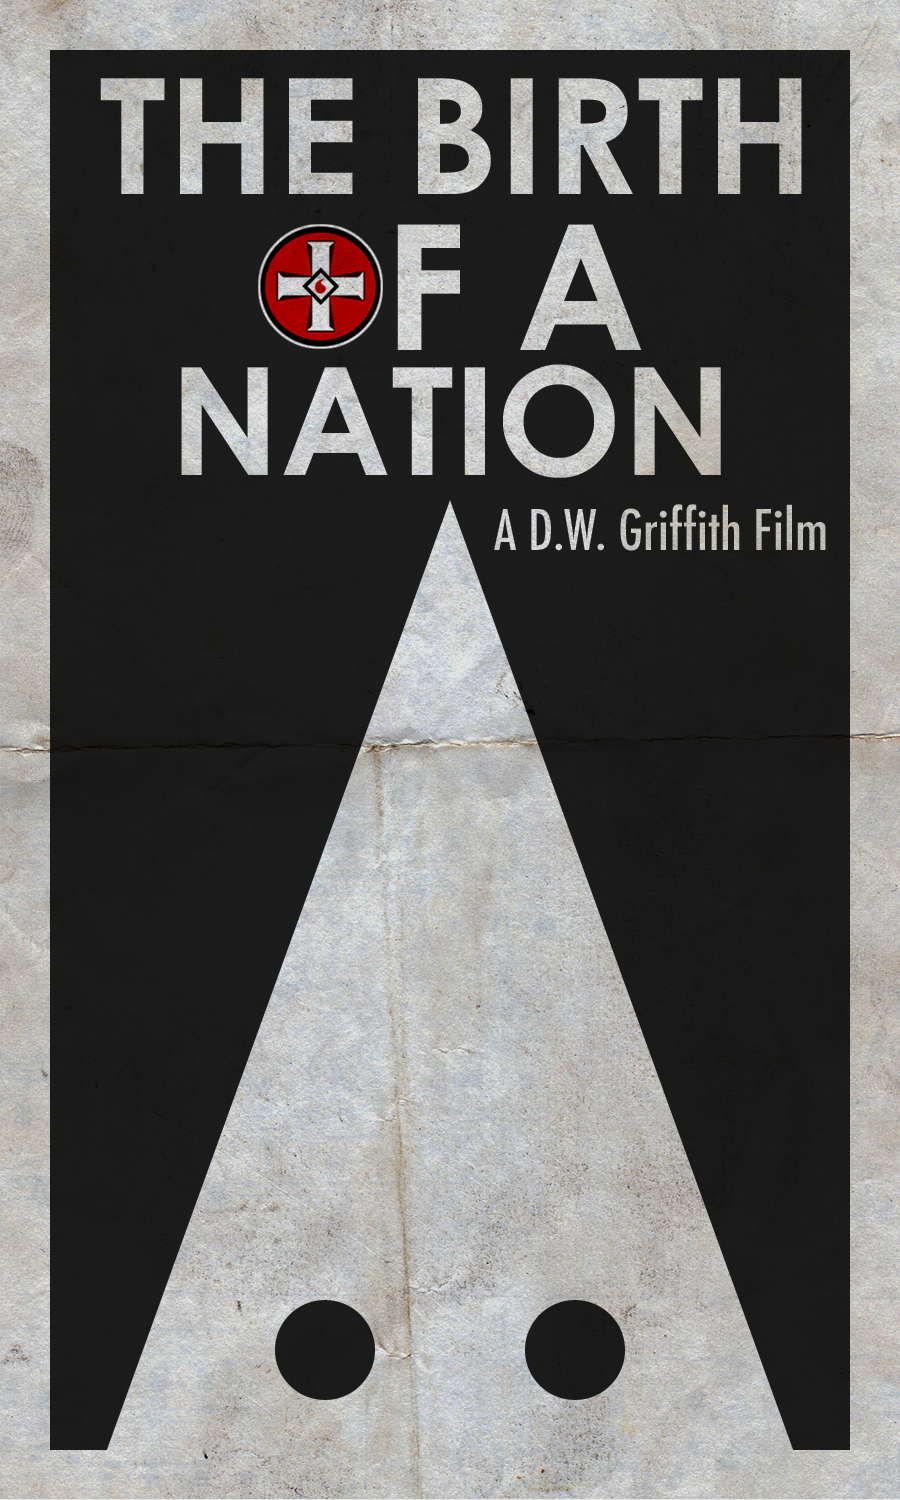 the birth of a nation griffith essay Download thesis statement on the birth of a nation in our database or order an original thesis paper that will be written by one of our staff writers and delivered.